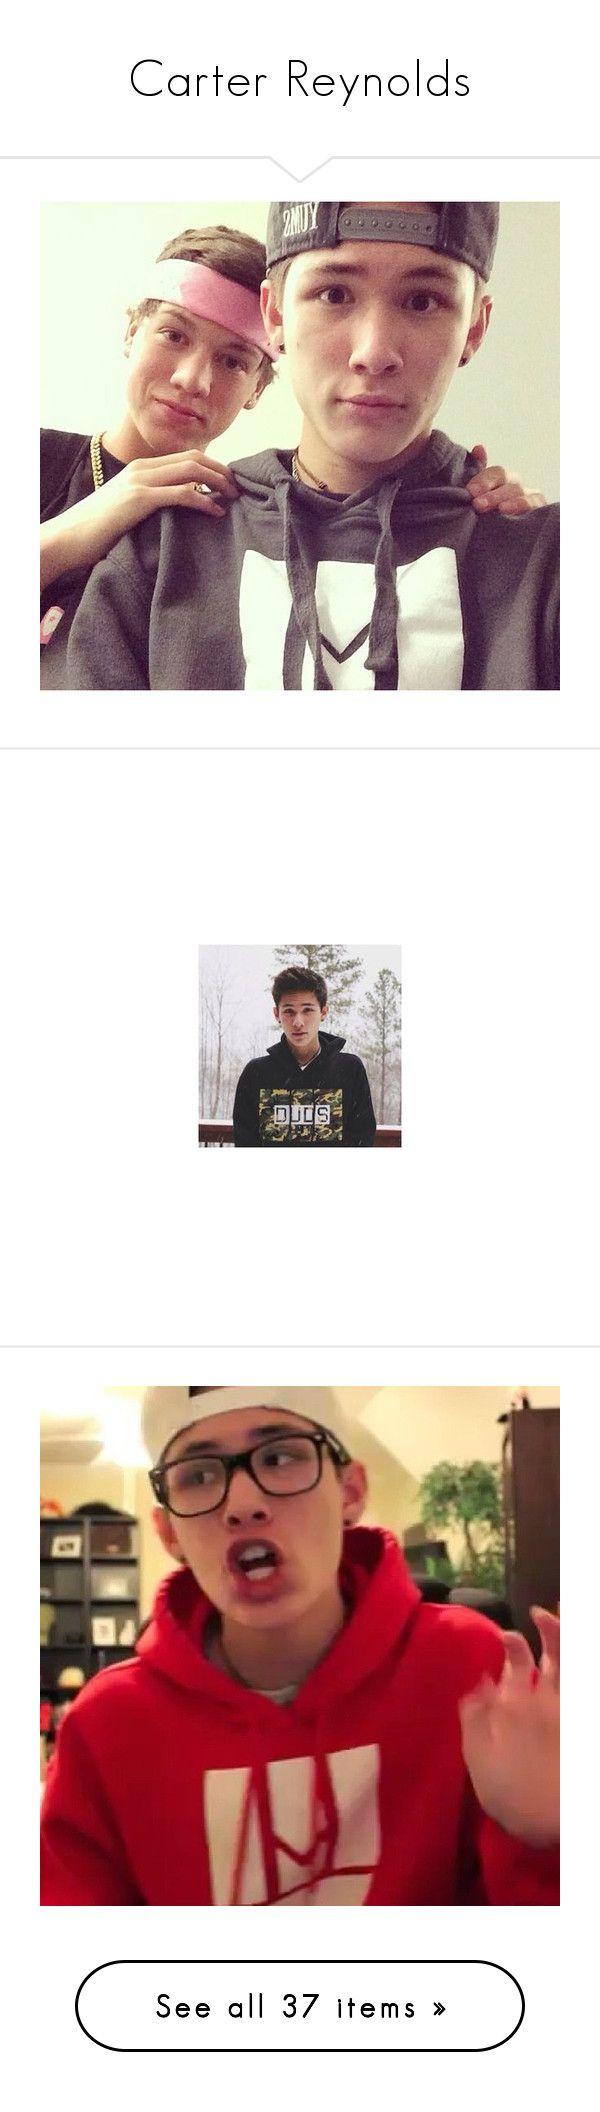 """""""Carter Reynolds"""" by ash13-vineboys ❤ liked on Polyvore featuring magcon, carter, pictures, taylor, magcon boys, boys, carter reynolds, people, youtube and pics"""